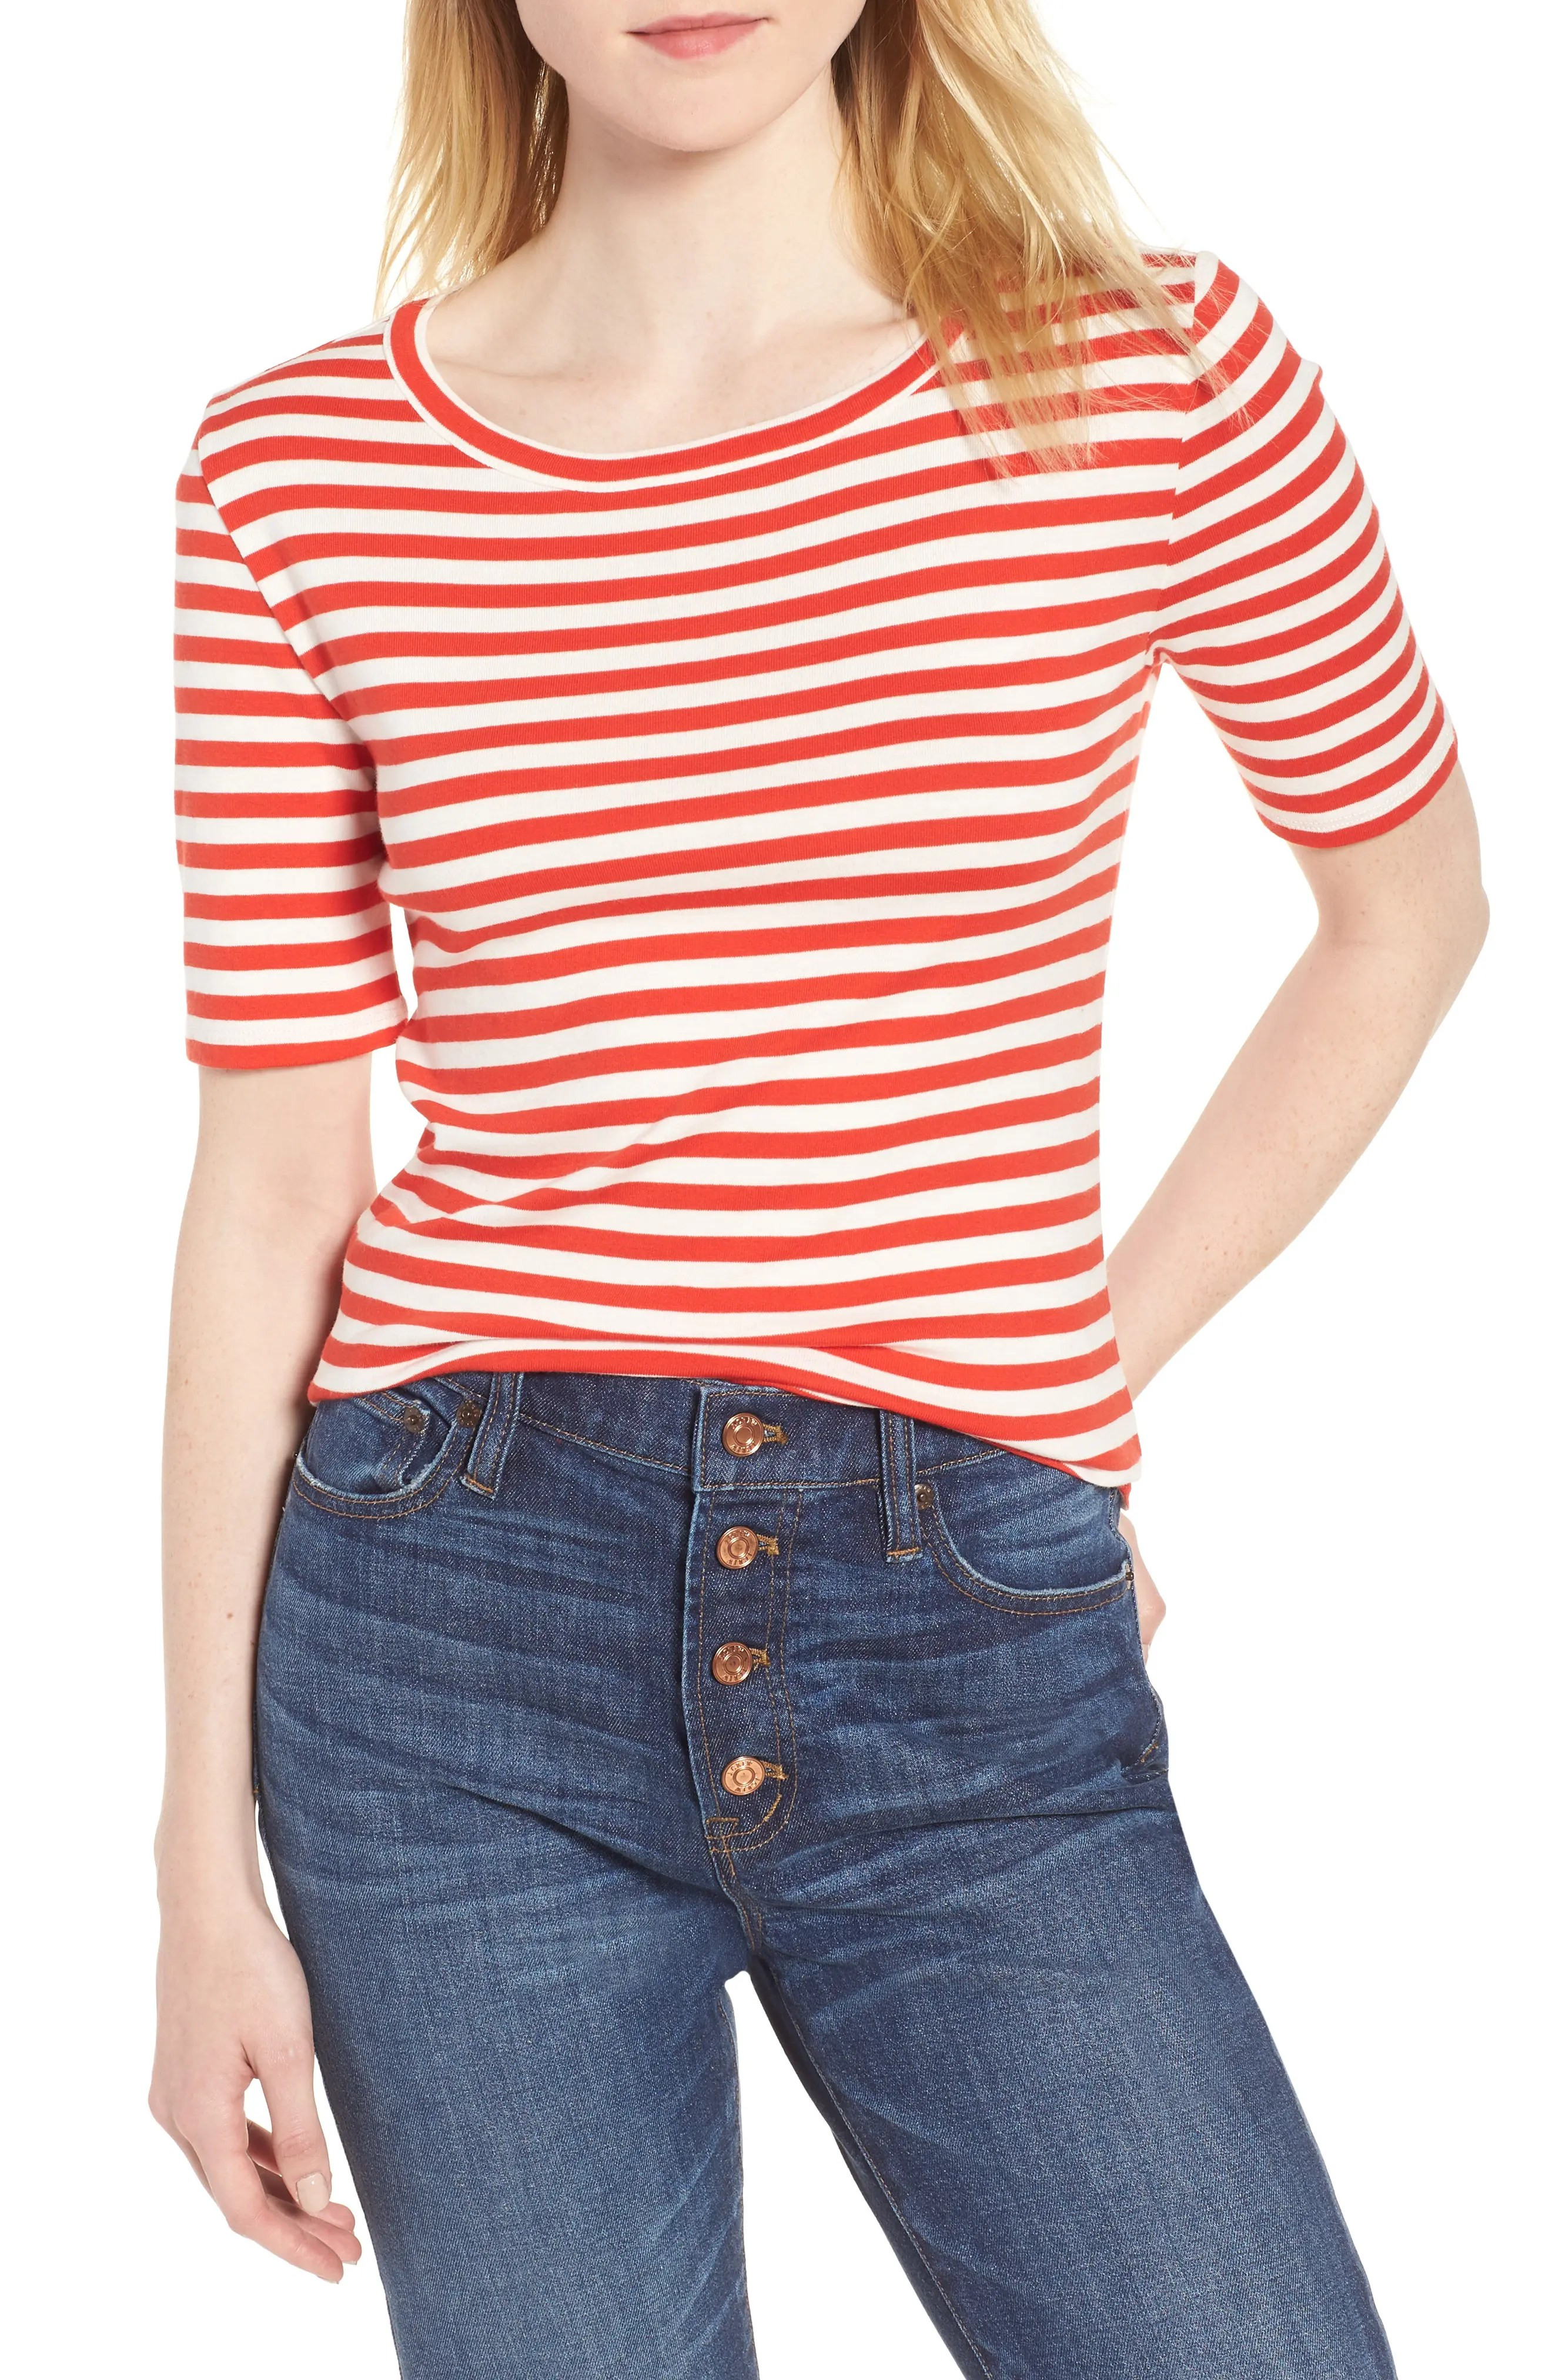 J Crew Perfect Fit Tee : perfect, Perfect, T-Shirt, Nordstrom